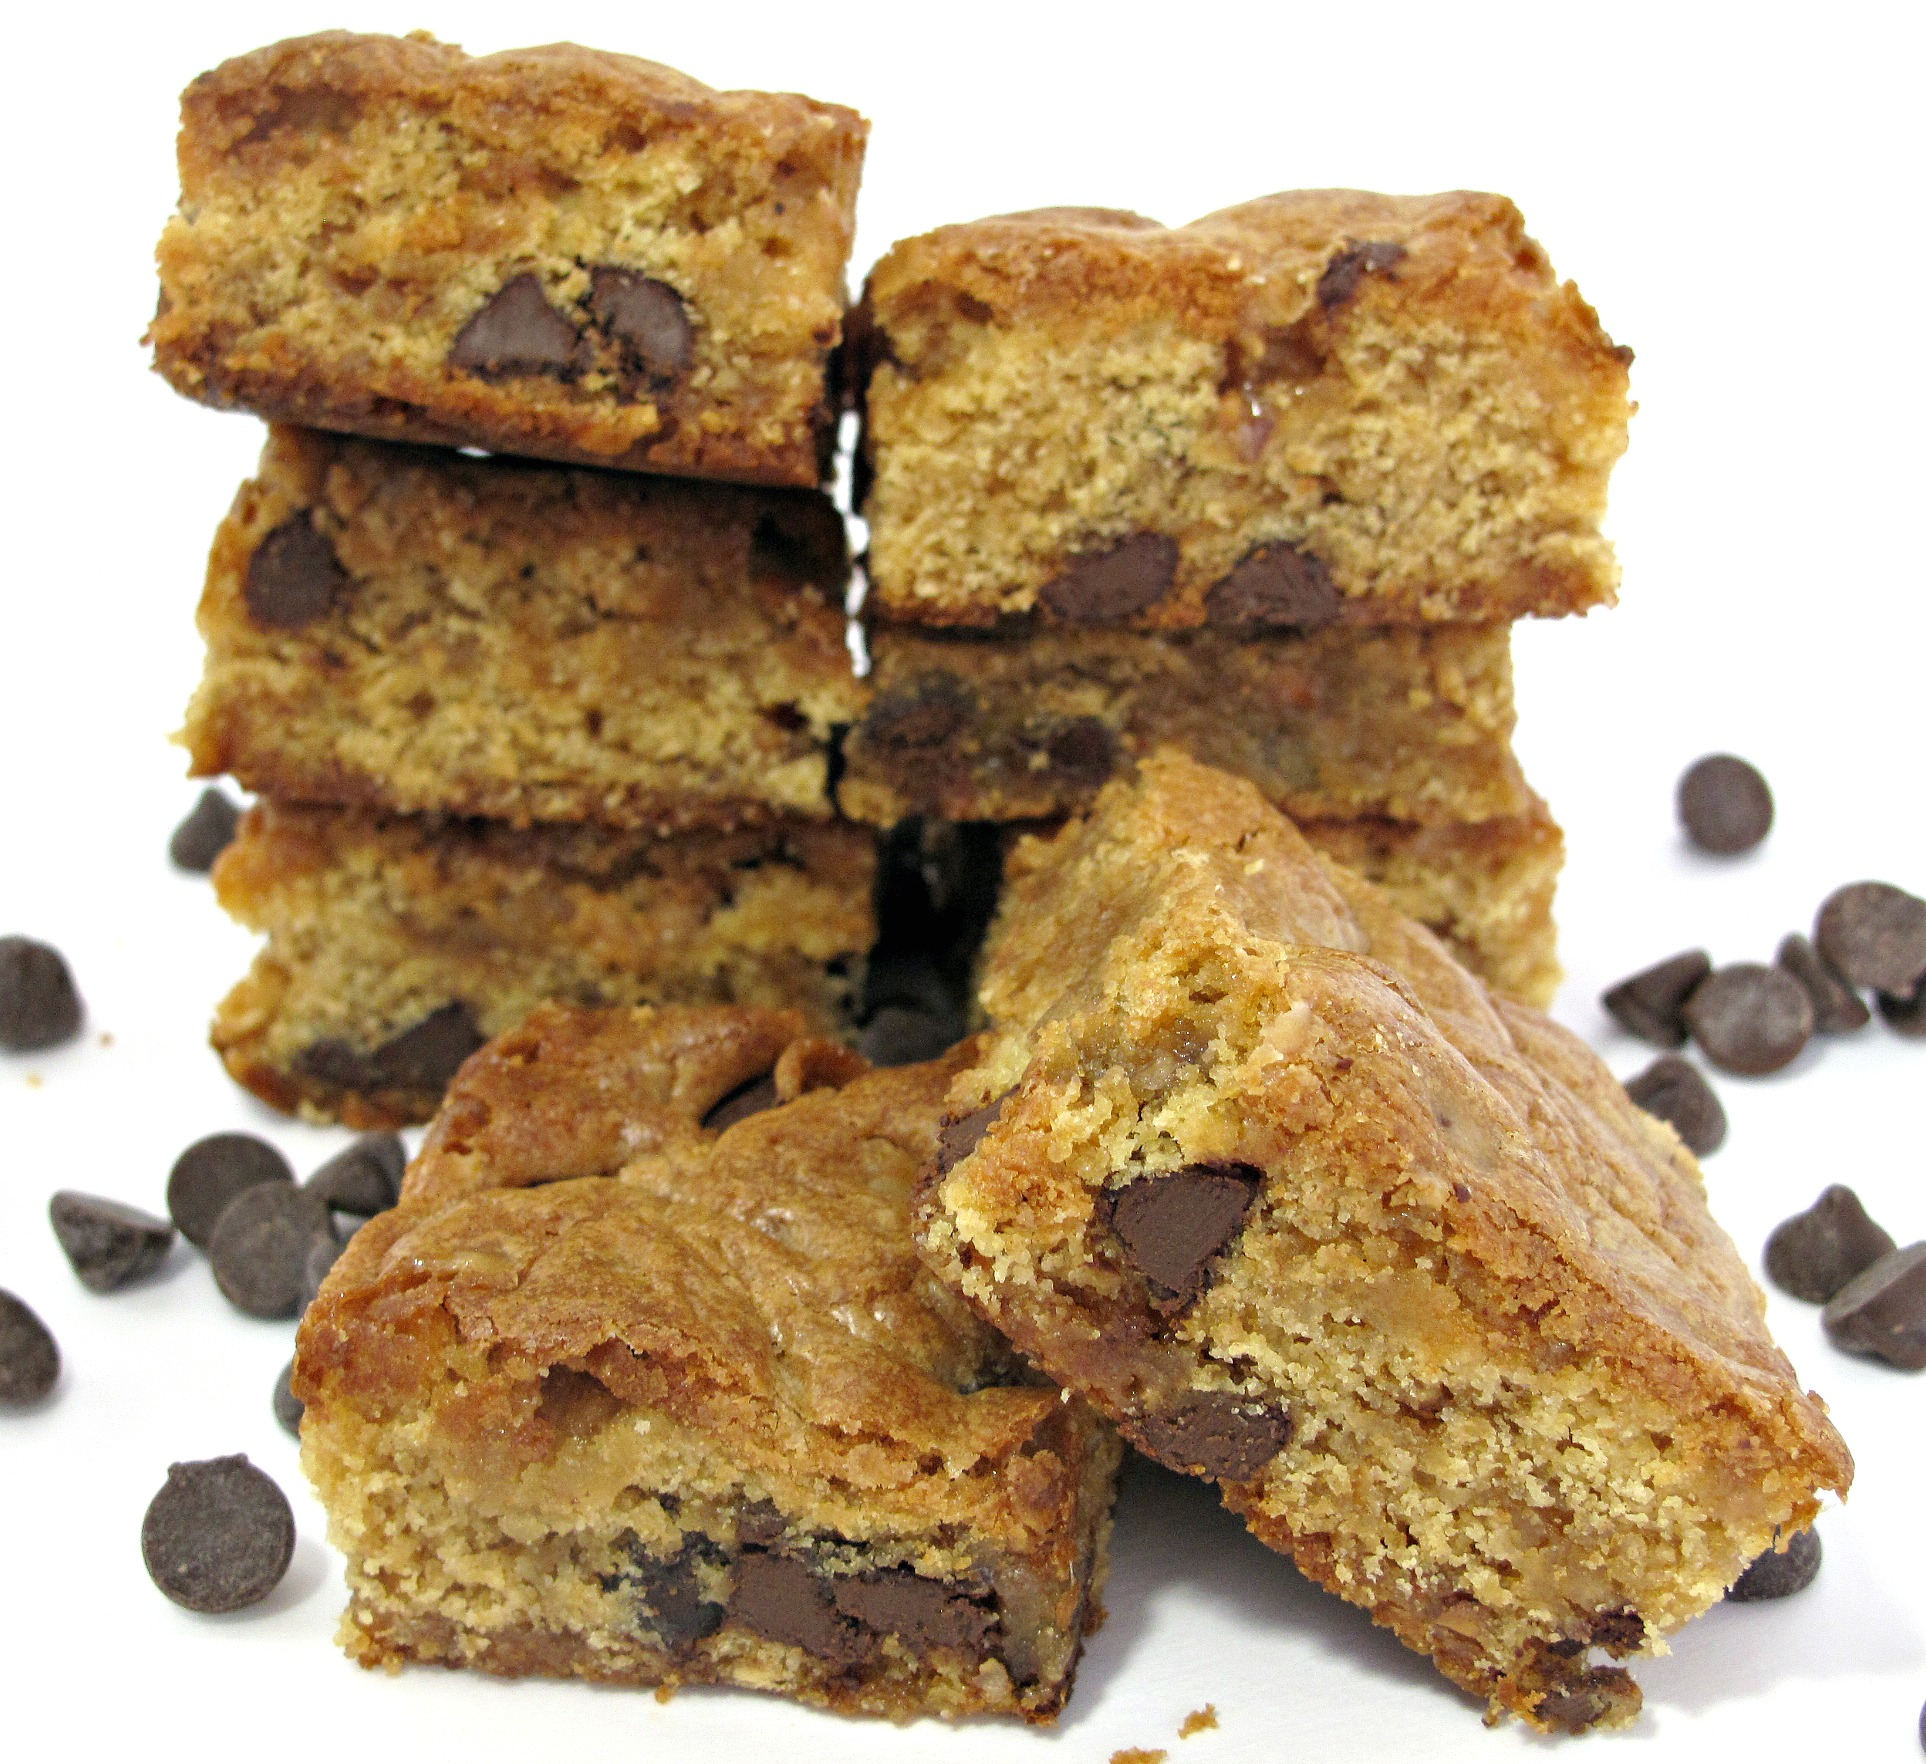 Chocolate Chip Cookie Bars with Incredibly Long Lasting Chewiness